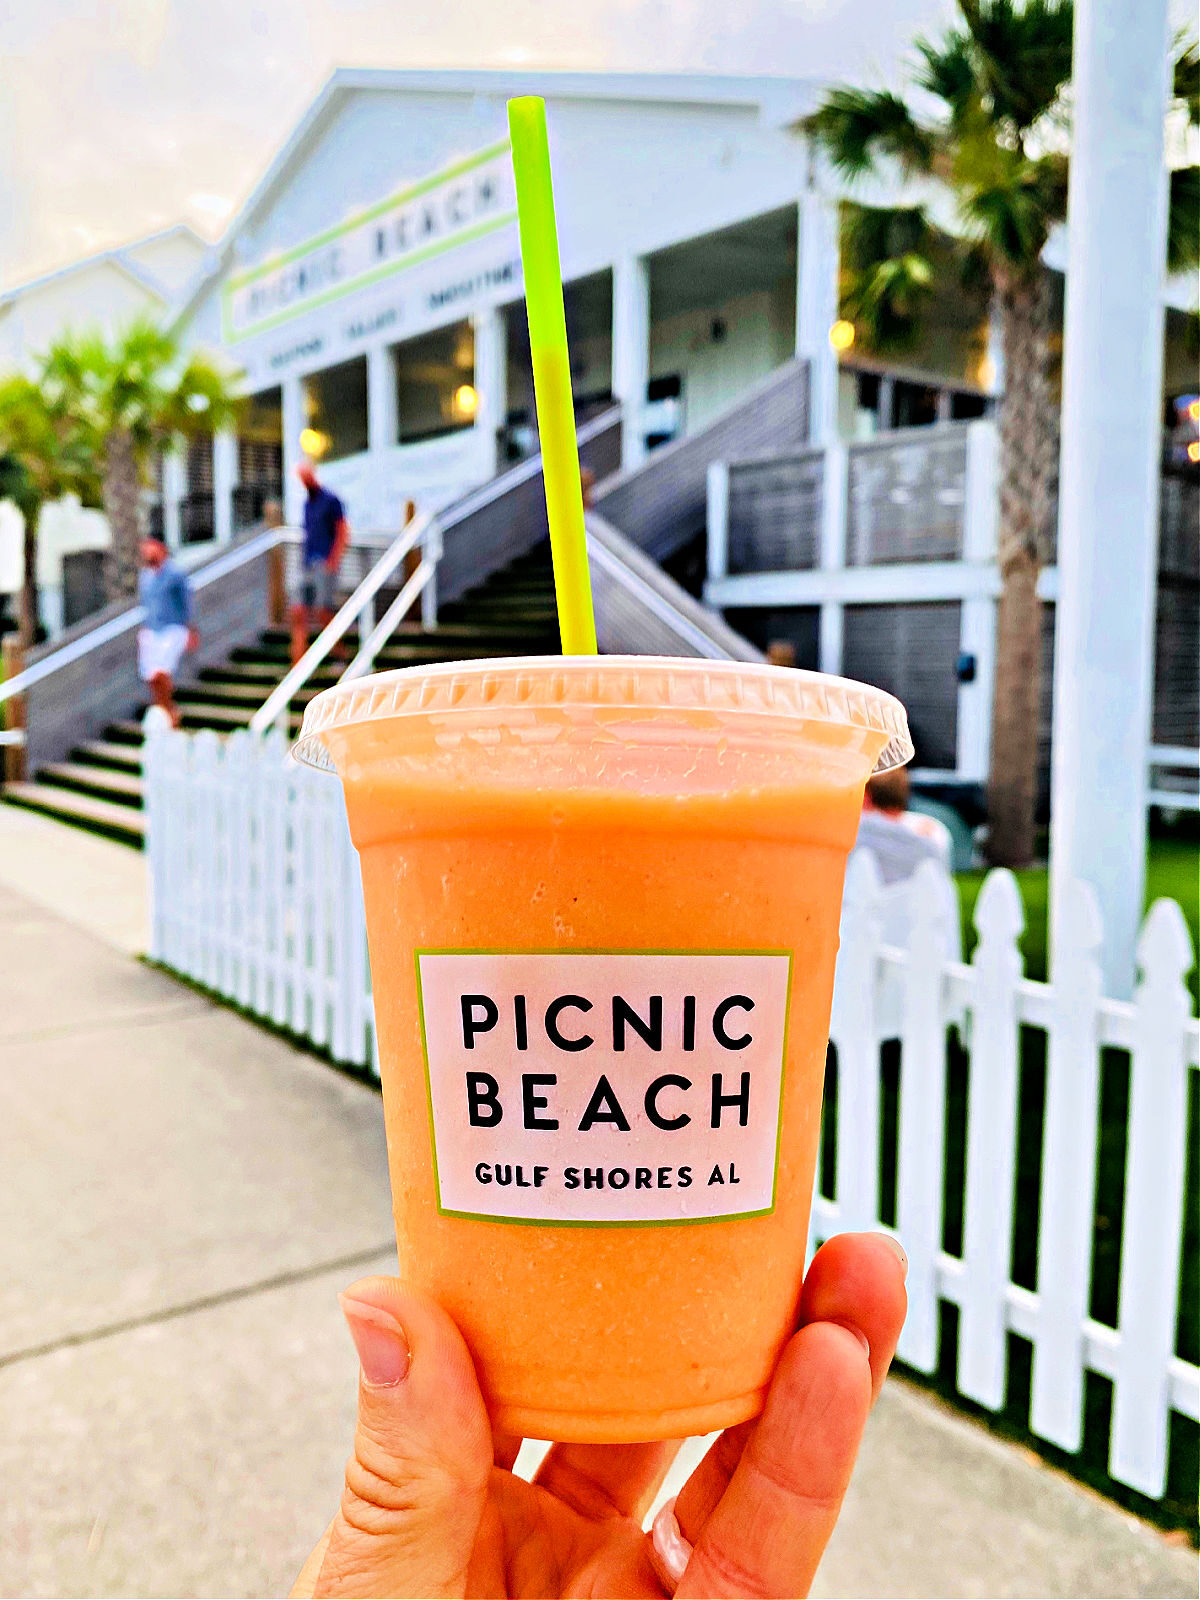 An orange smoothie be held up in front of a restaurant.